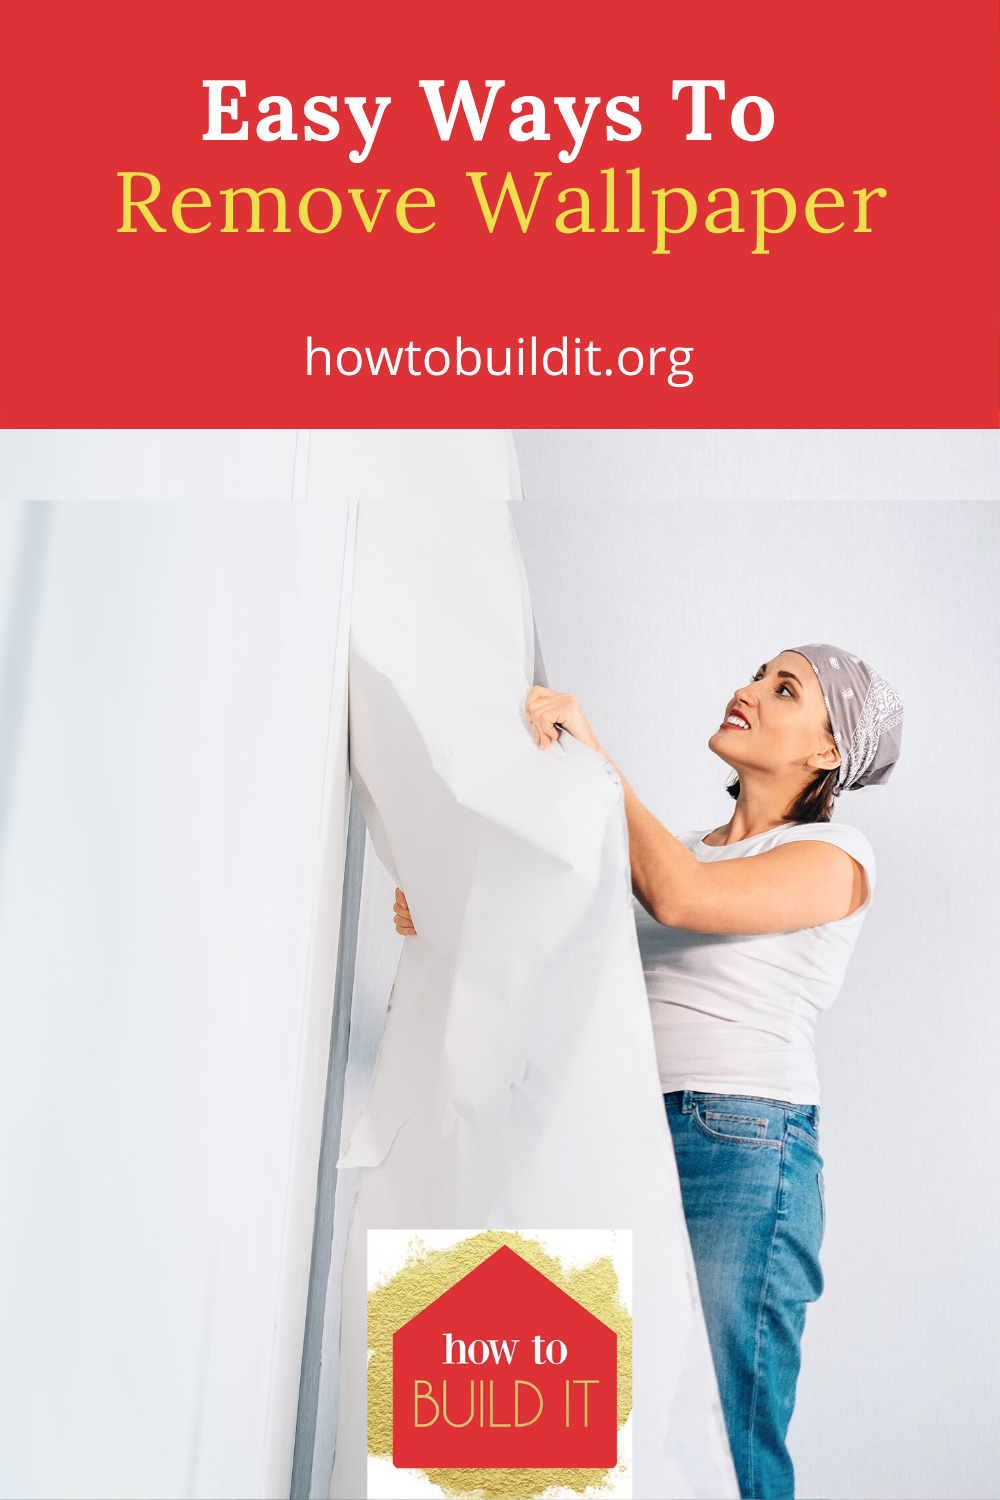 Removing wallpaper can be quite the job. I know because I spent hours of backbreaking work doing it when I bought an old home. If I had only known these tricks back then. If you need to remove wallpaper, wait until you have read this post. Then, things will go much quicker and much easier. #howtoremovewallpaper #tipsforremovingwallpaper #removewallpapereasily